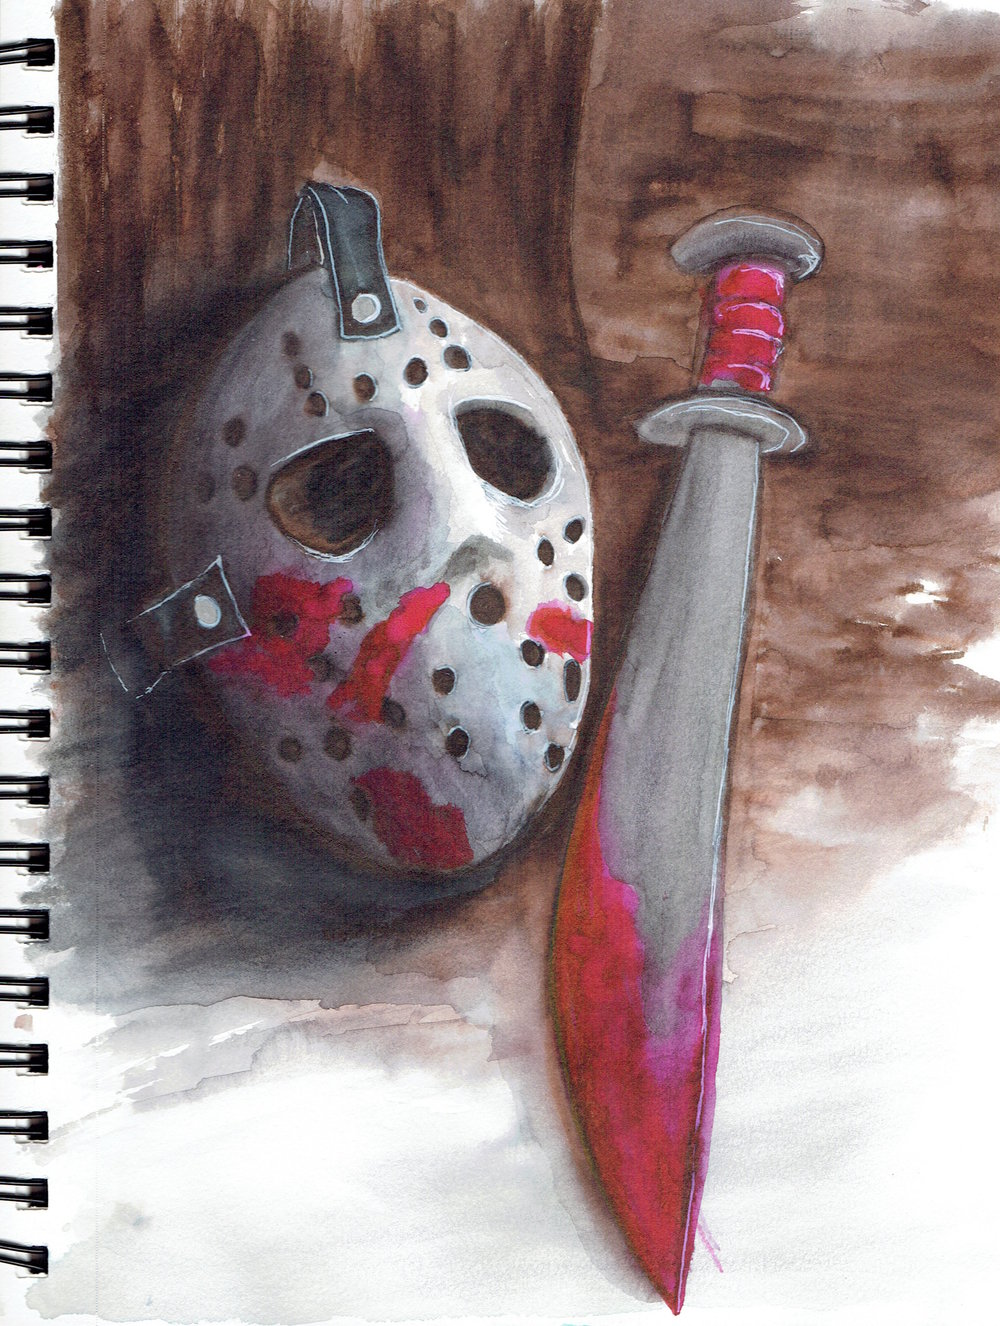 10/13: Friday the 13th